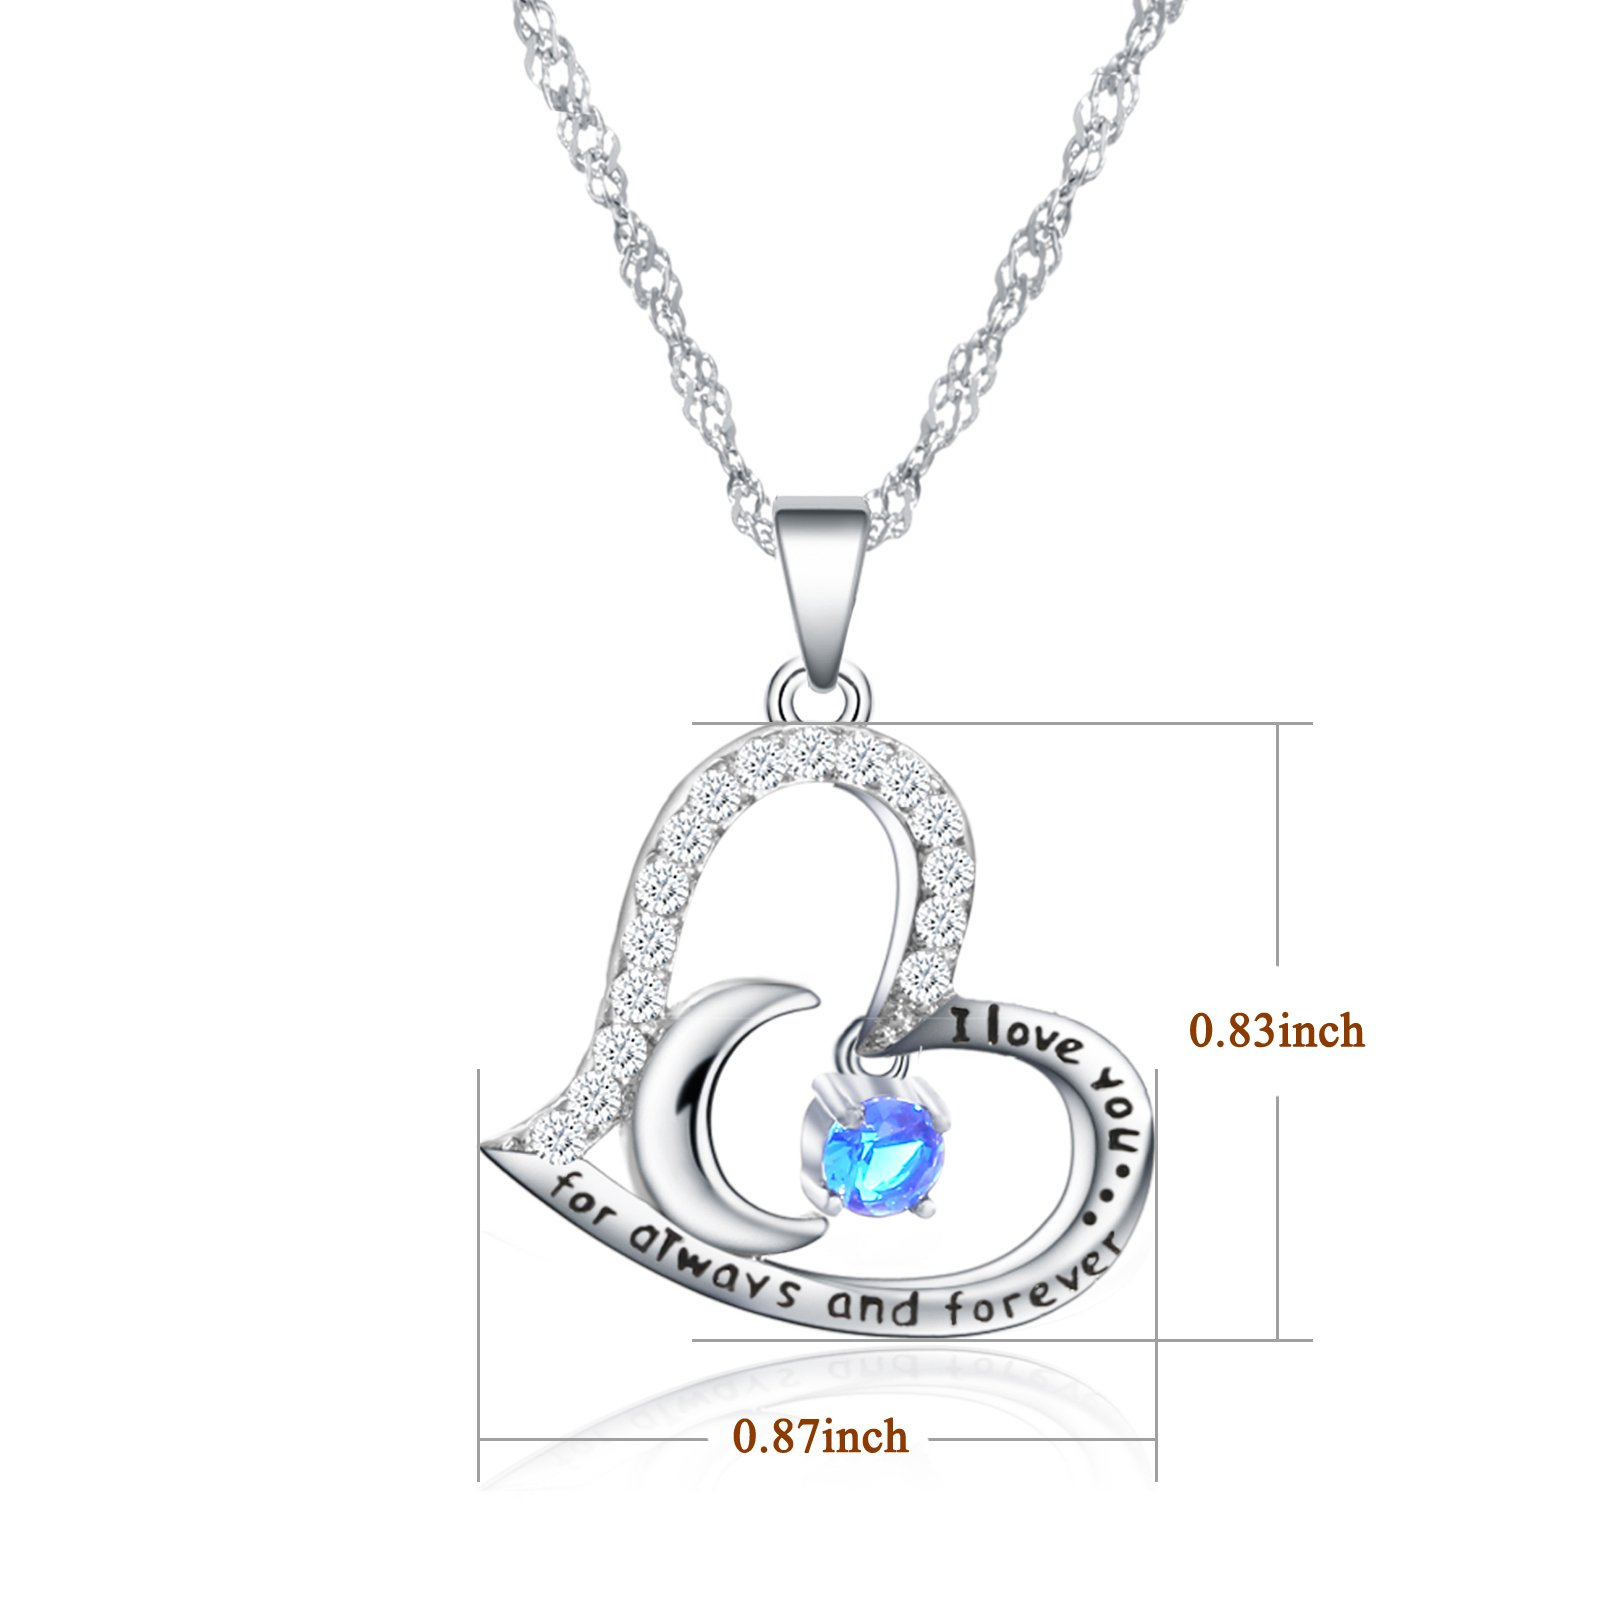 Valentine's Day Gift Fine Jewelry Gift Sterling Silver Heart Pendant Necklace Birthday Necklace I Love You For Always and Forever Dancing Birthstone (09-September-Sapphire) by Anna Crystal Jewelry (Image #5)